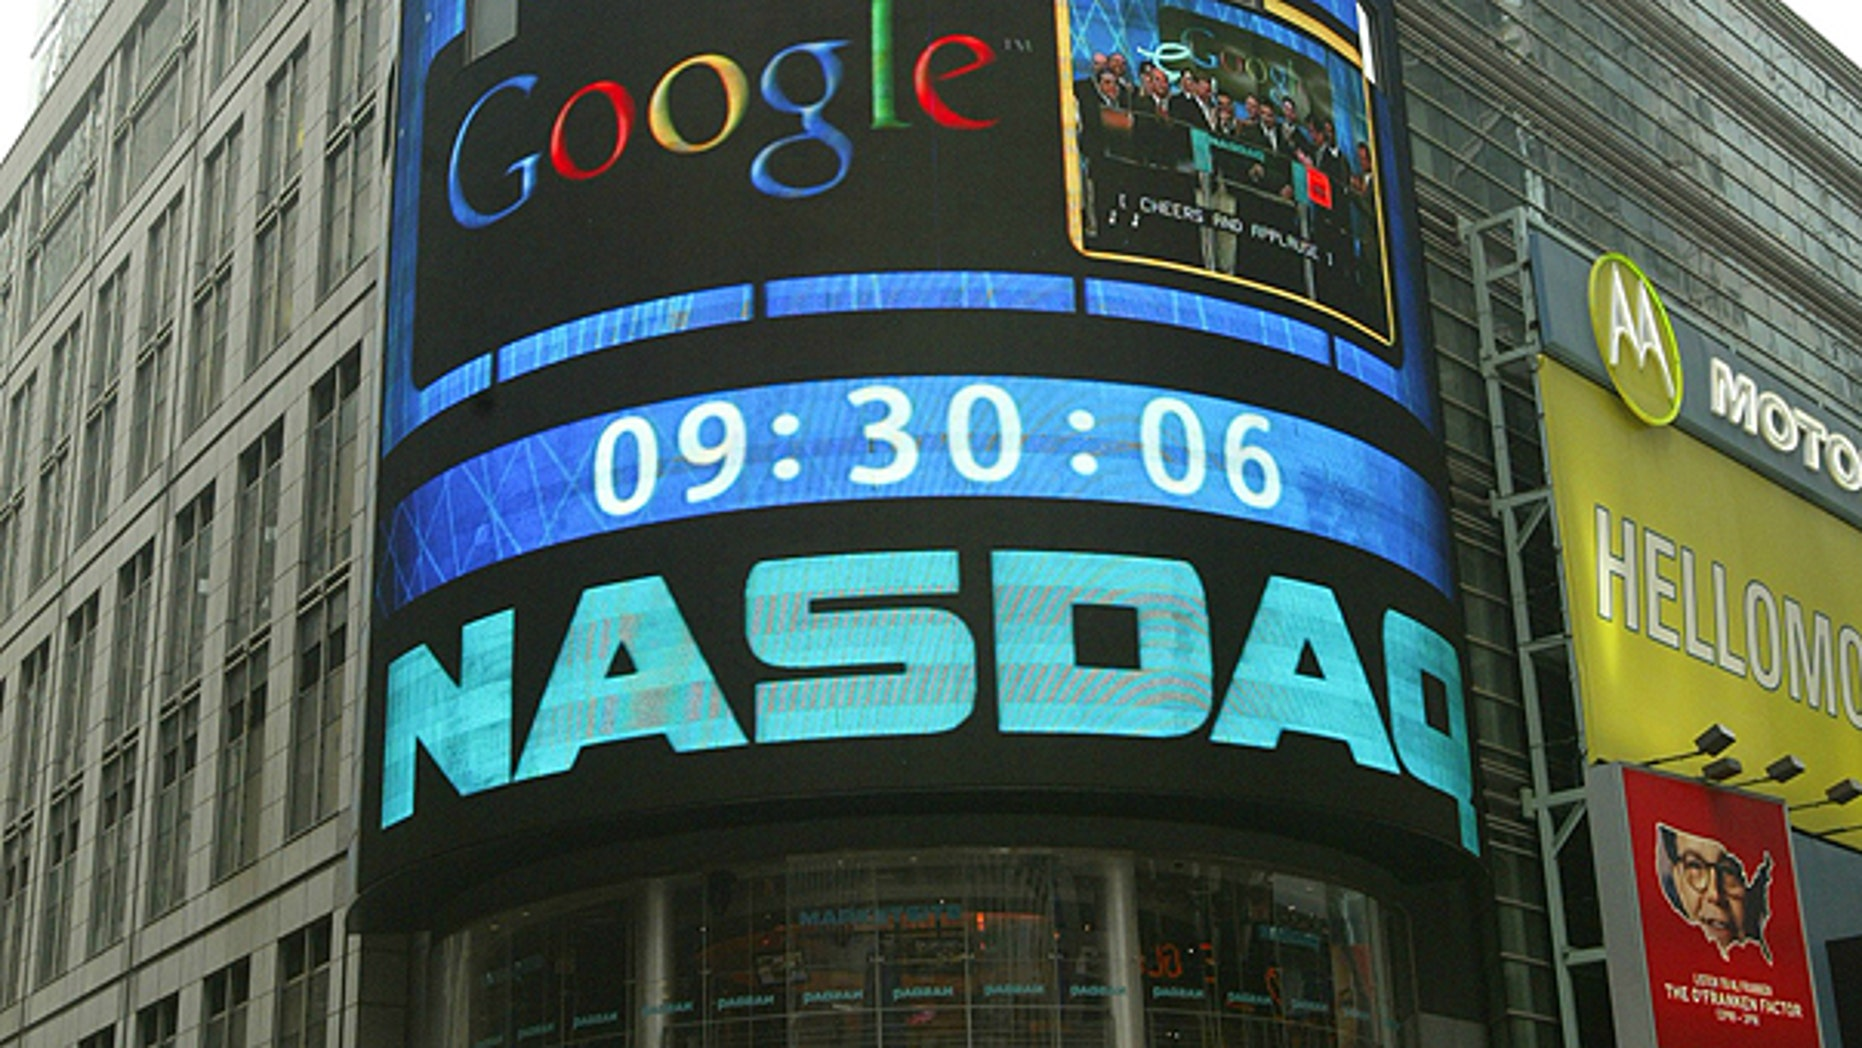 The sign outside the NASDAQ Market site is seen in this Aug. 19, 2004 file photo taken in New York.